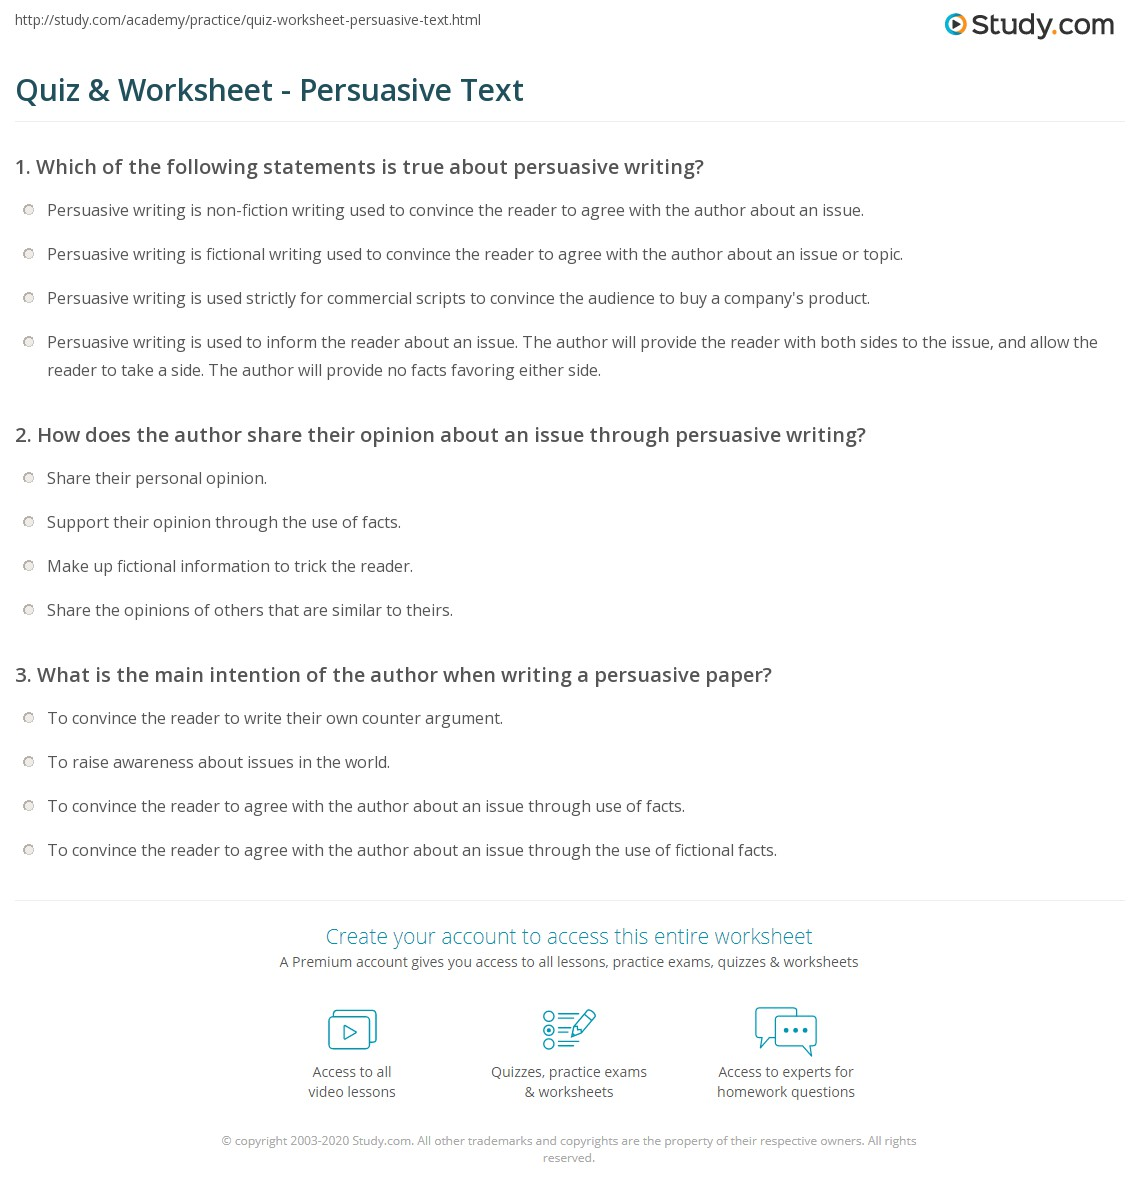 Worksheets Persuasive Techniques Worksheet persuasive techniques worksheet sharebrowse sharebrowse